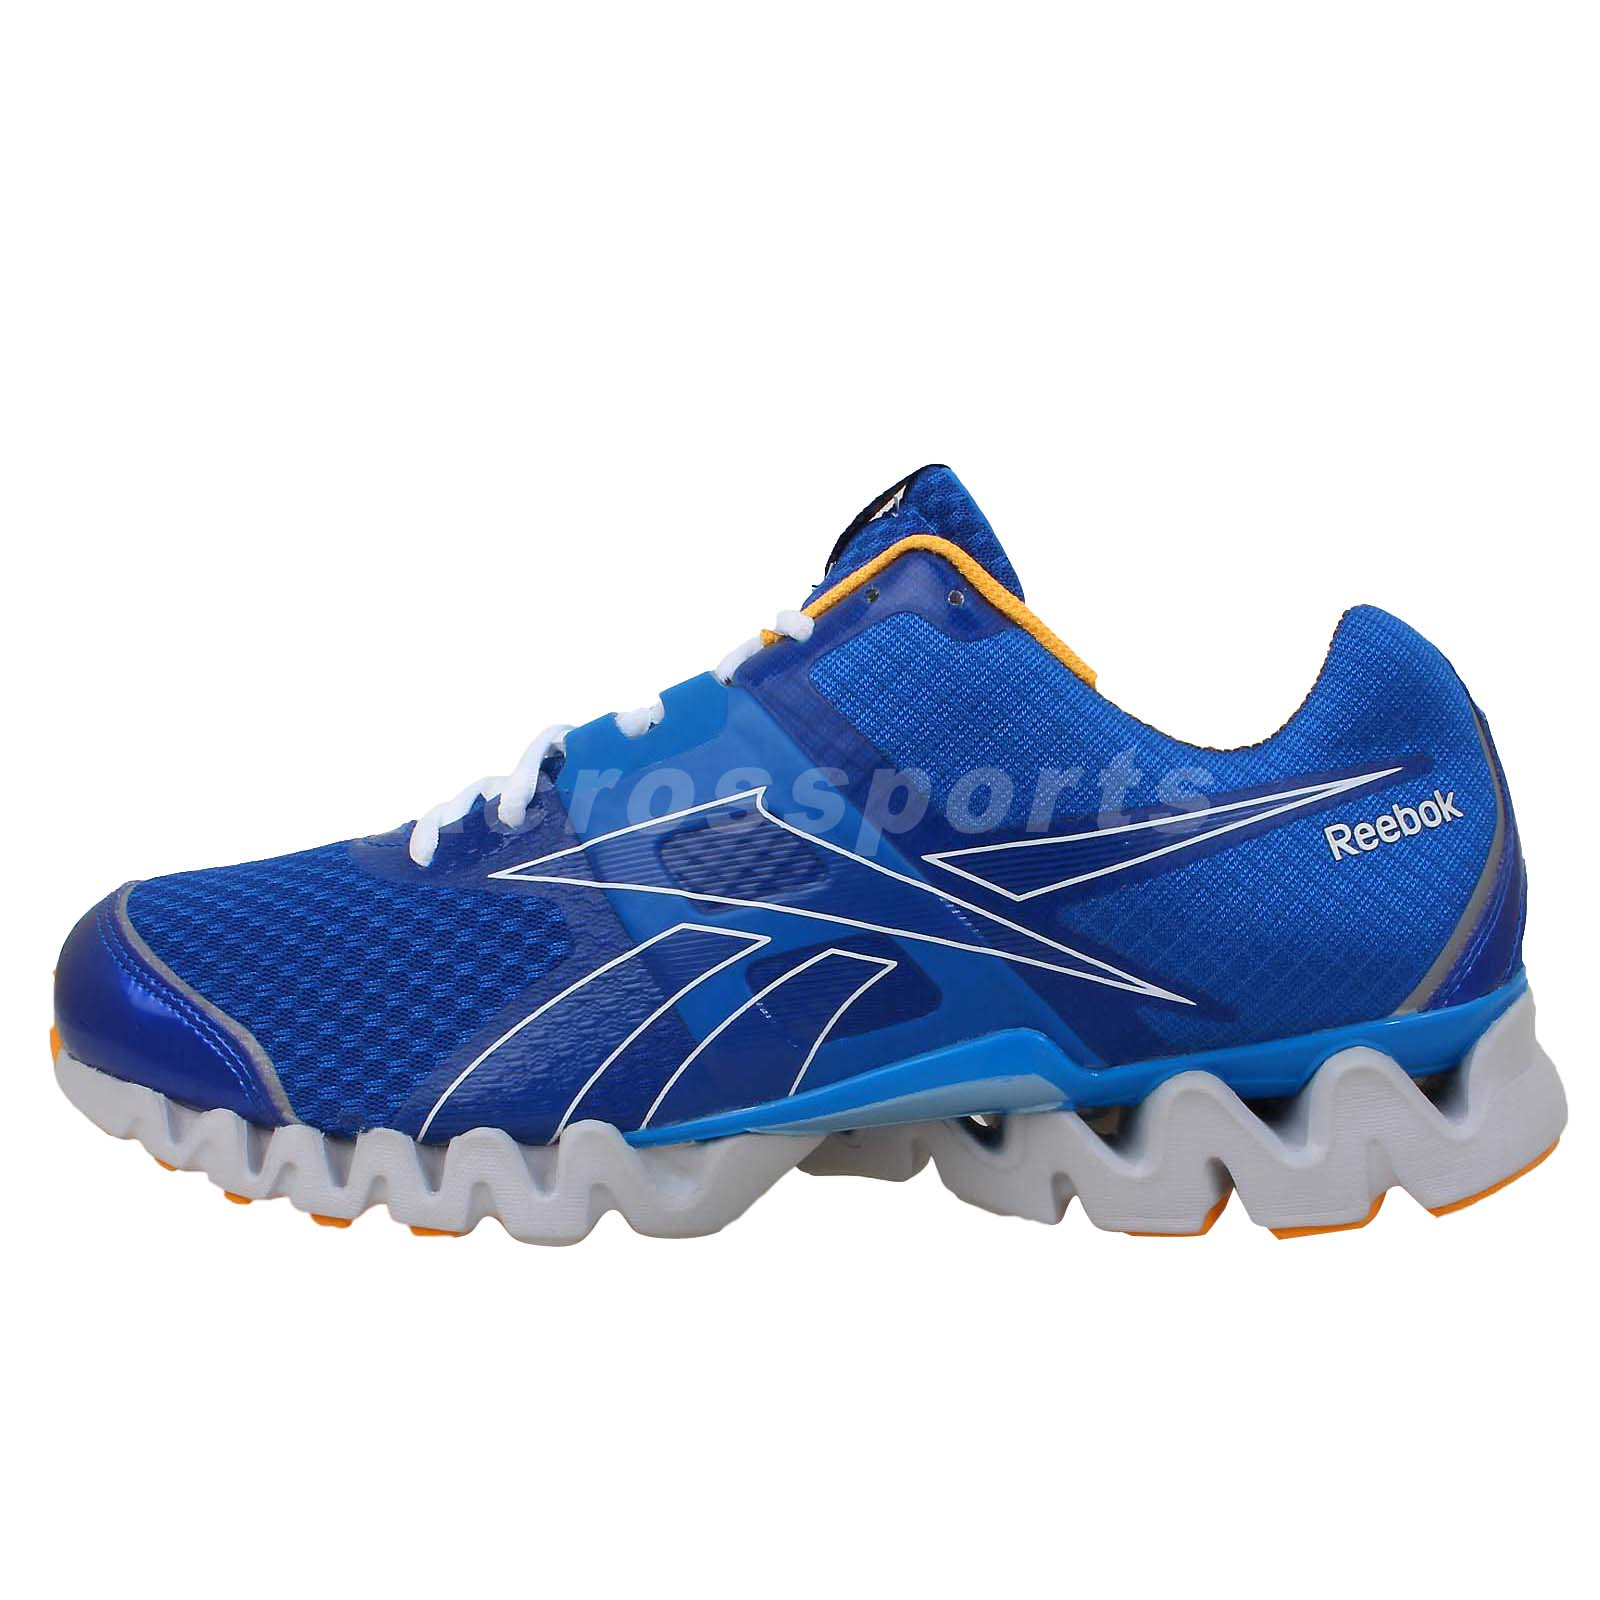 reebok zigtech 30 2013 mens running shoes runner sneakers